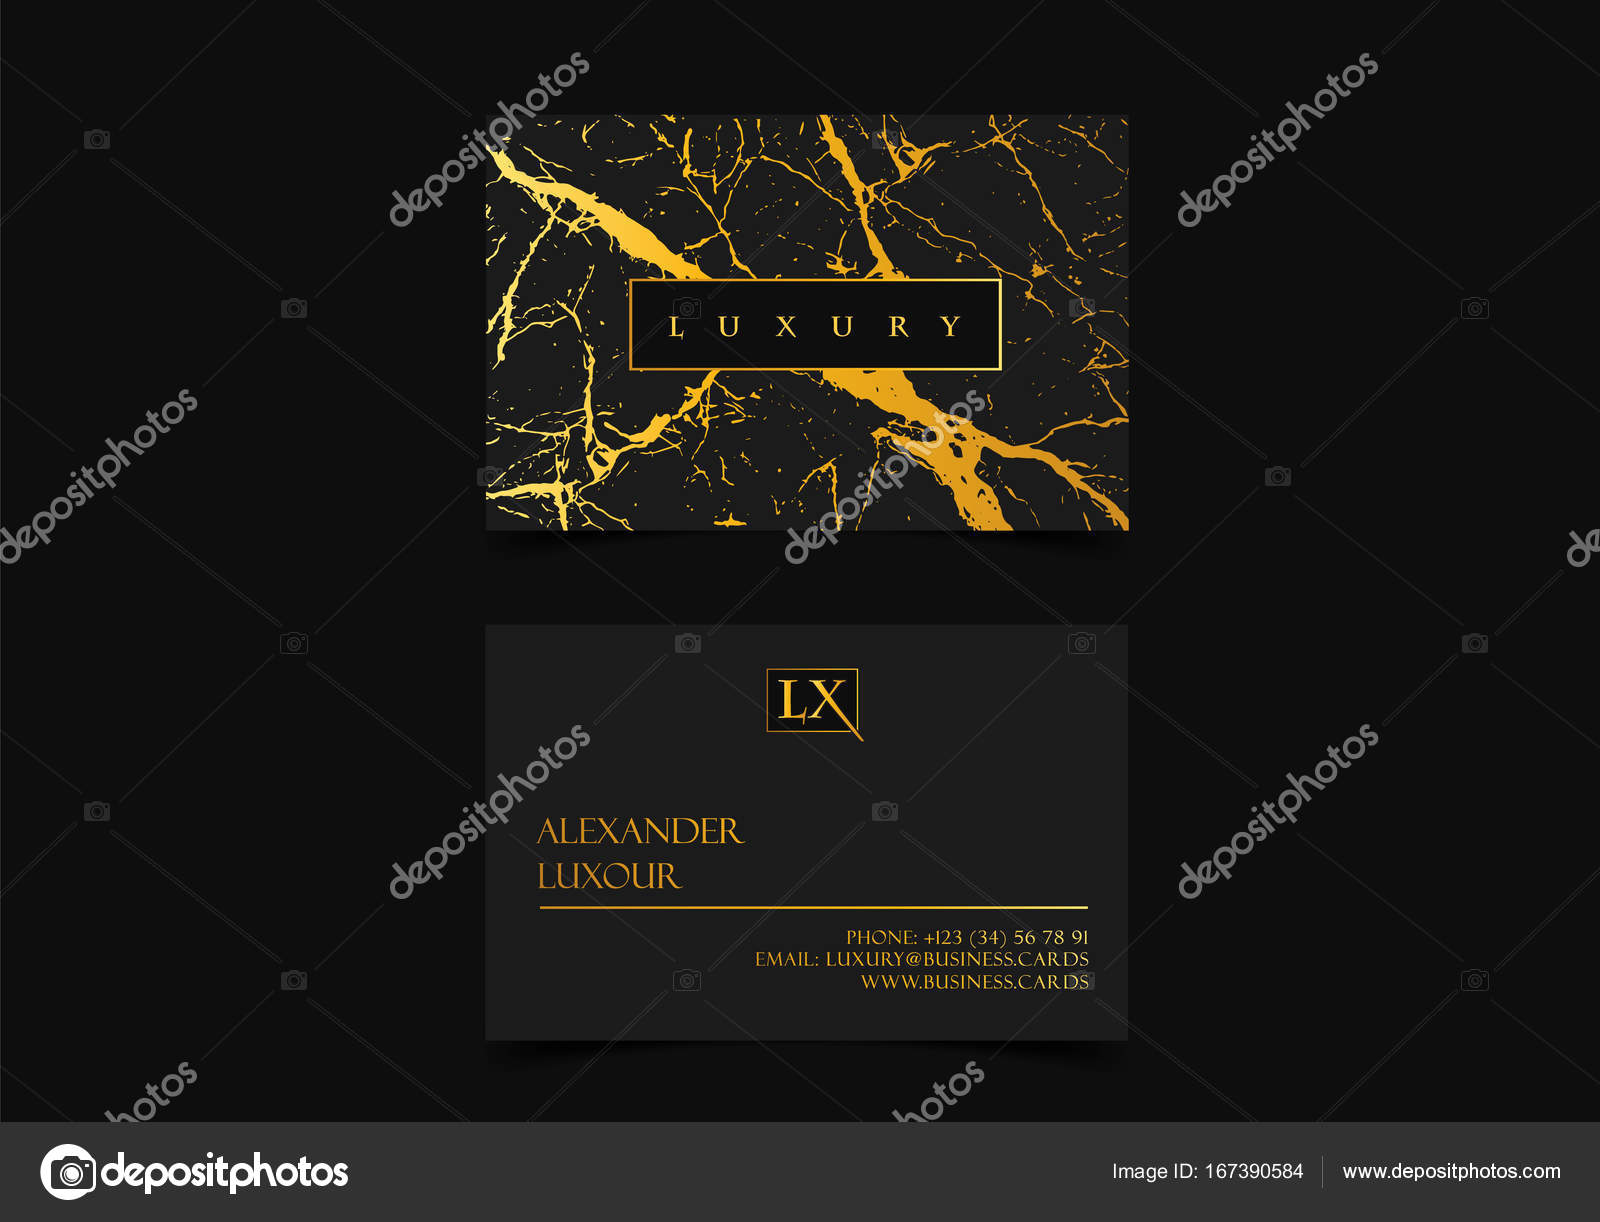 Elegant black luxury business cards with marble texture and gold elegant black luxury business cards with marble texture and gold detail vector template banner or reheart Images